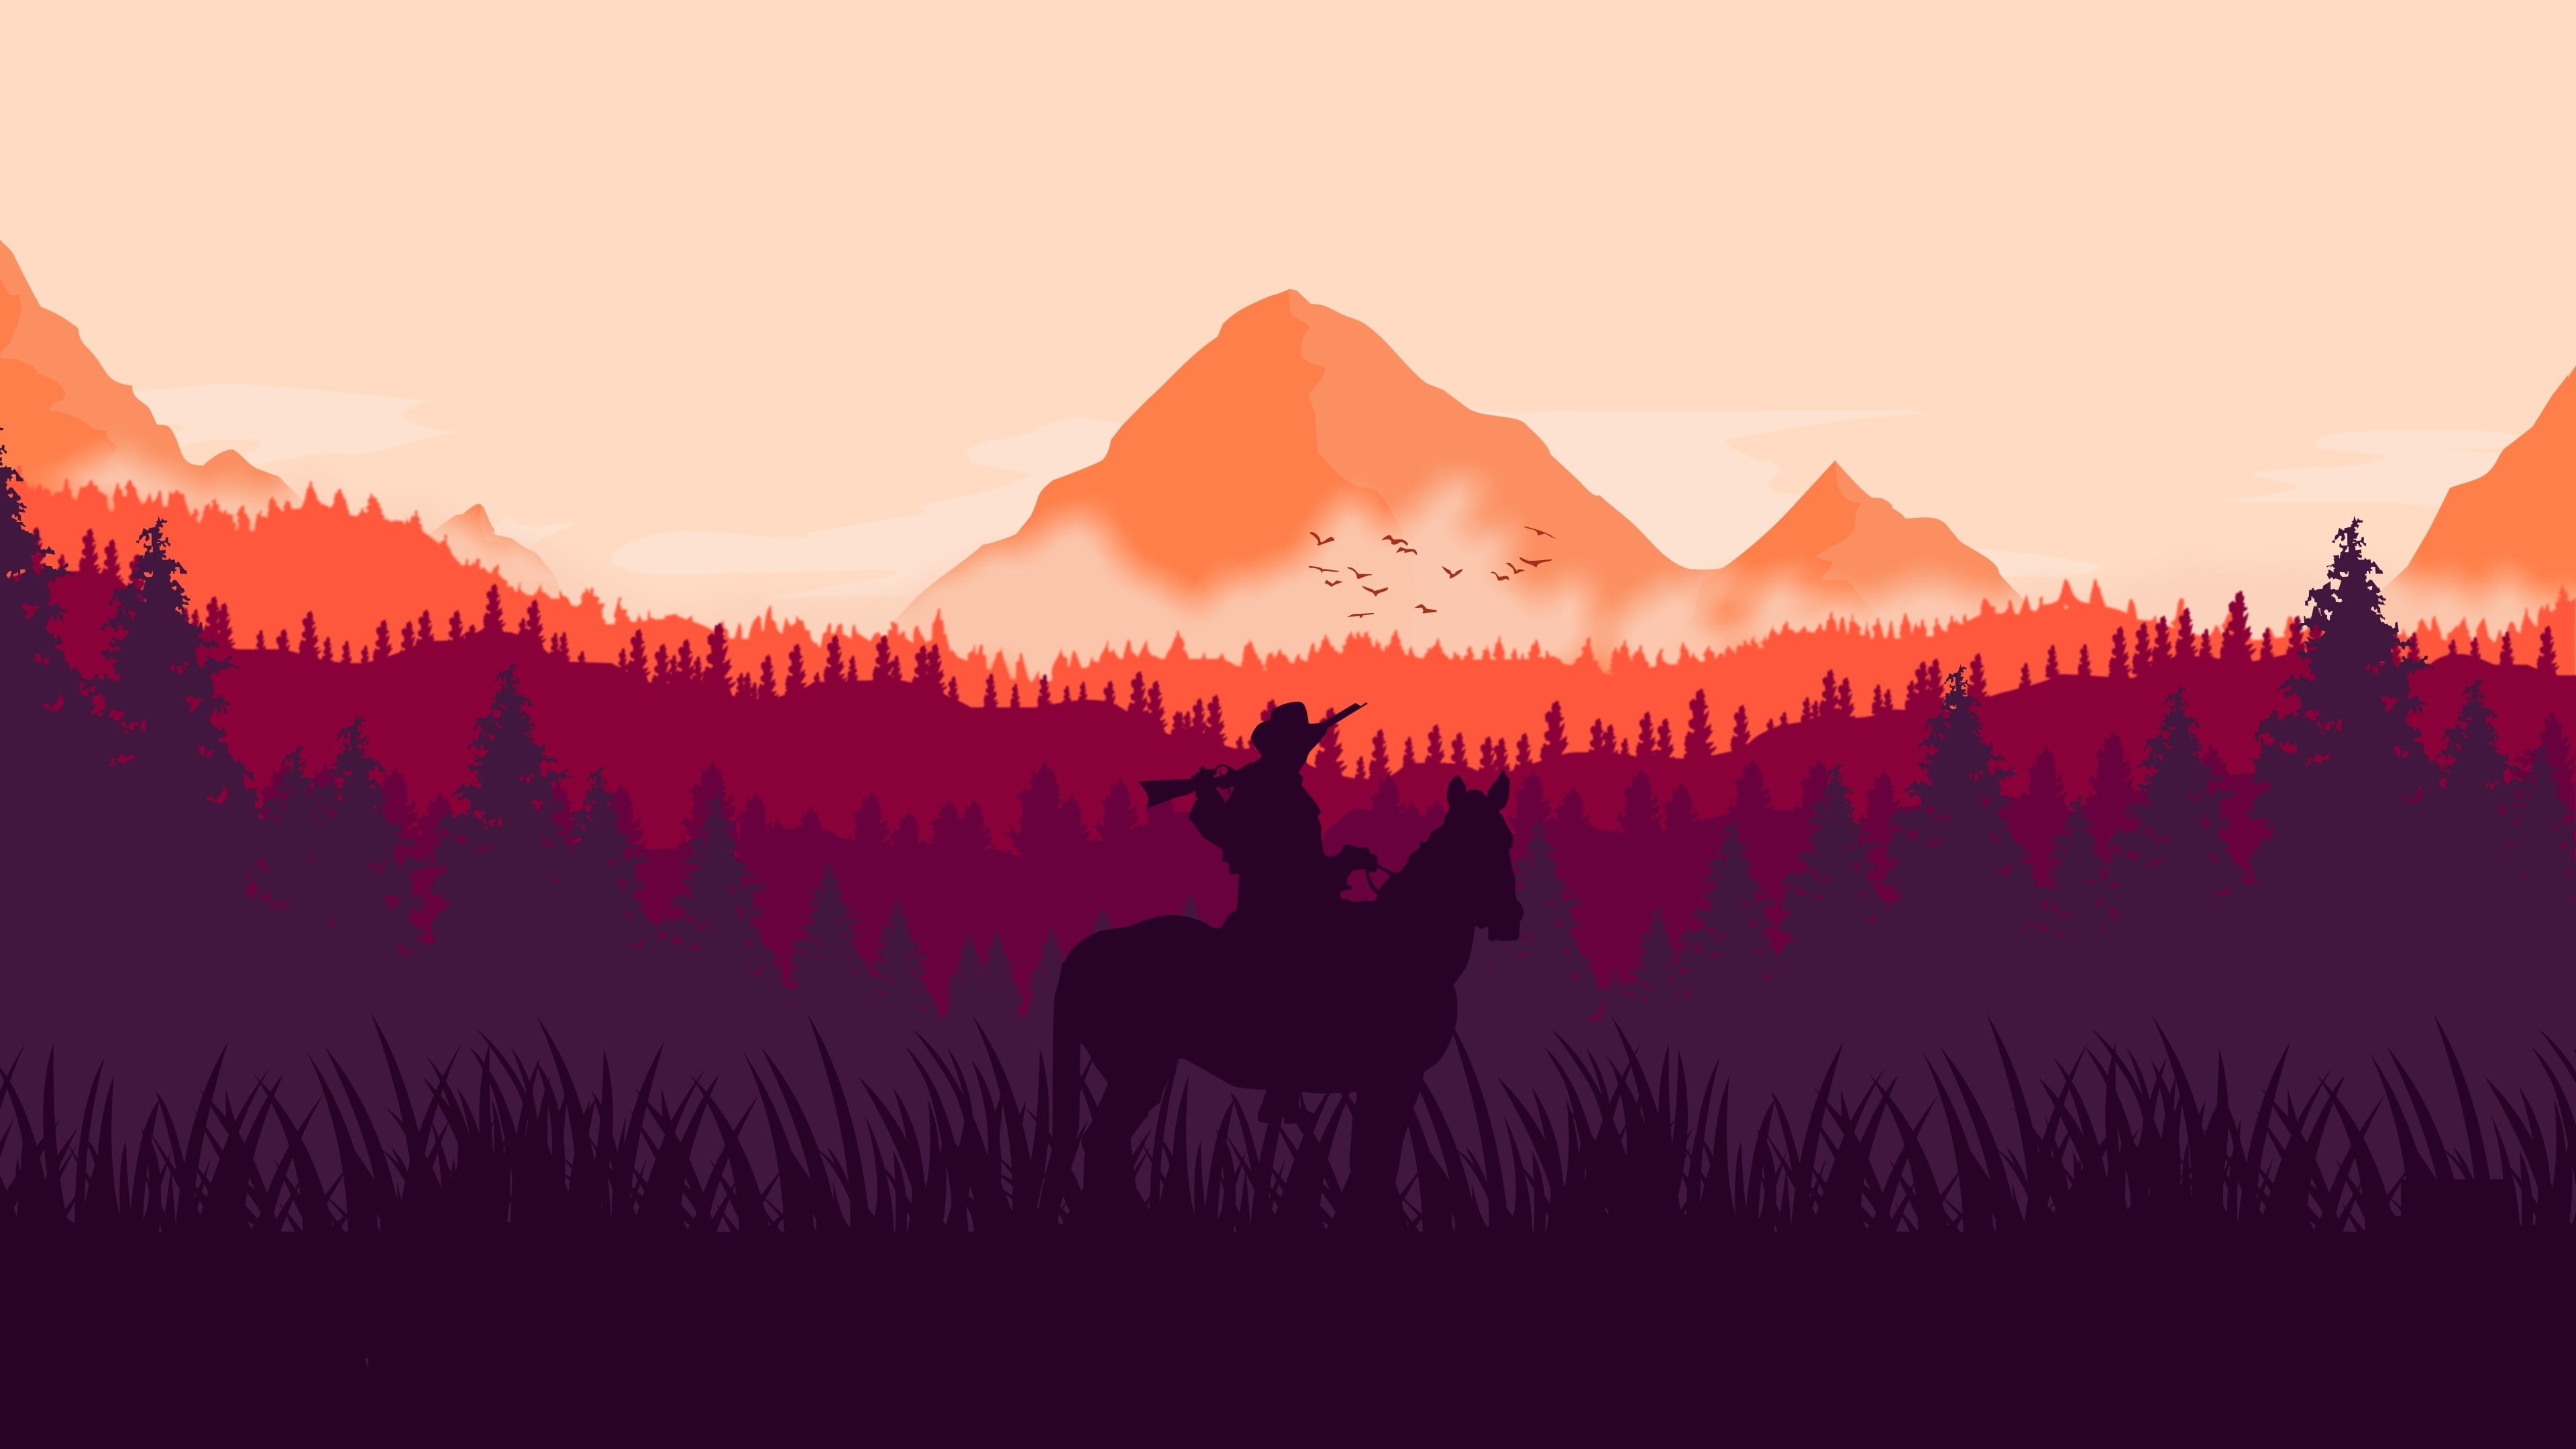 Download 3840x2160 Wallpaper Red Dead Redemption 2 Horse Ride